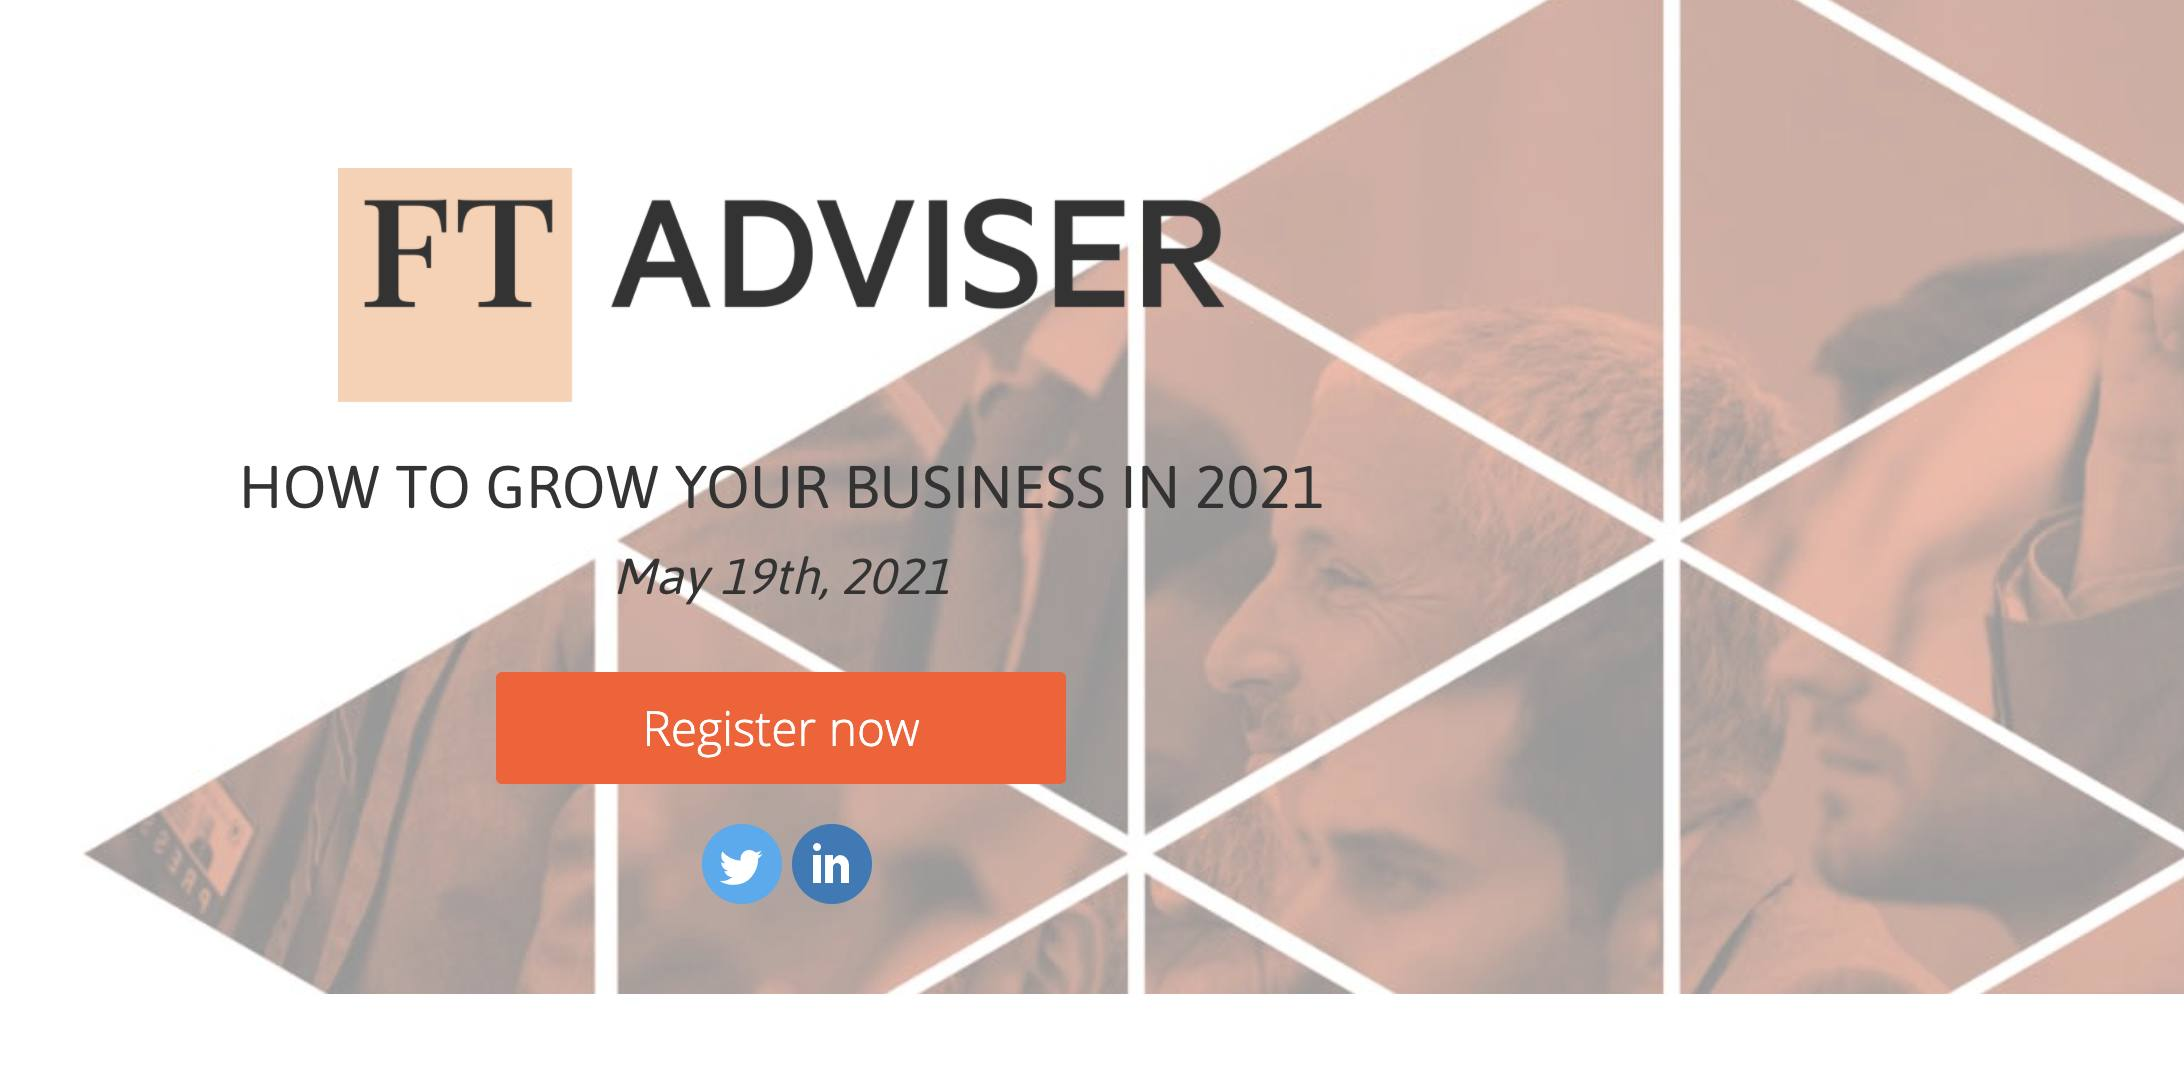 JOIN TODAY! How to grow your business in 2021